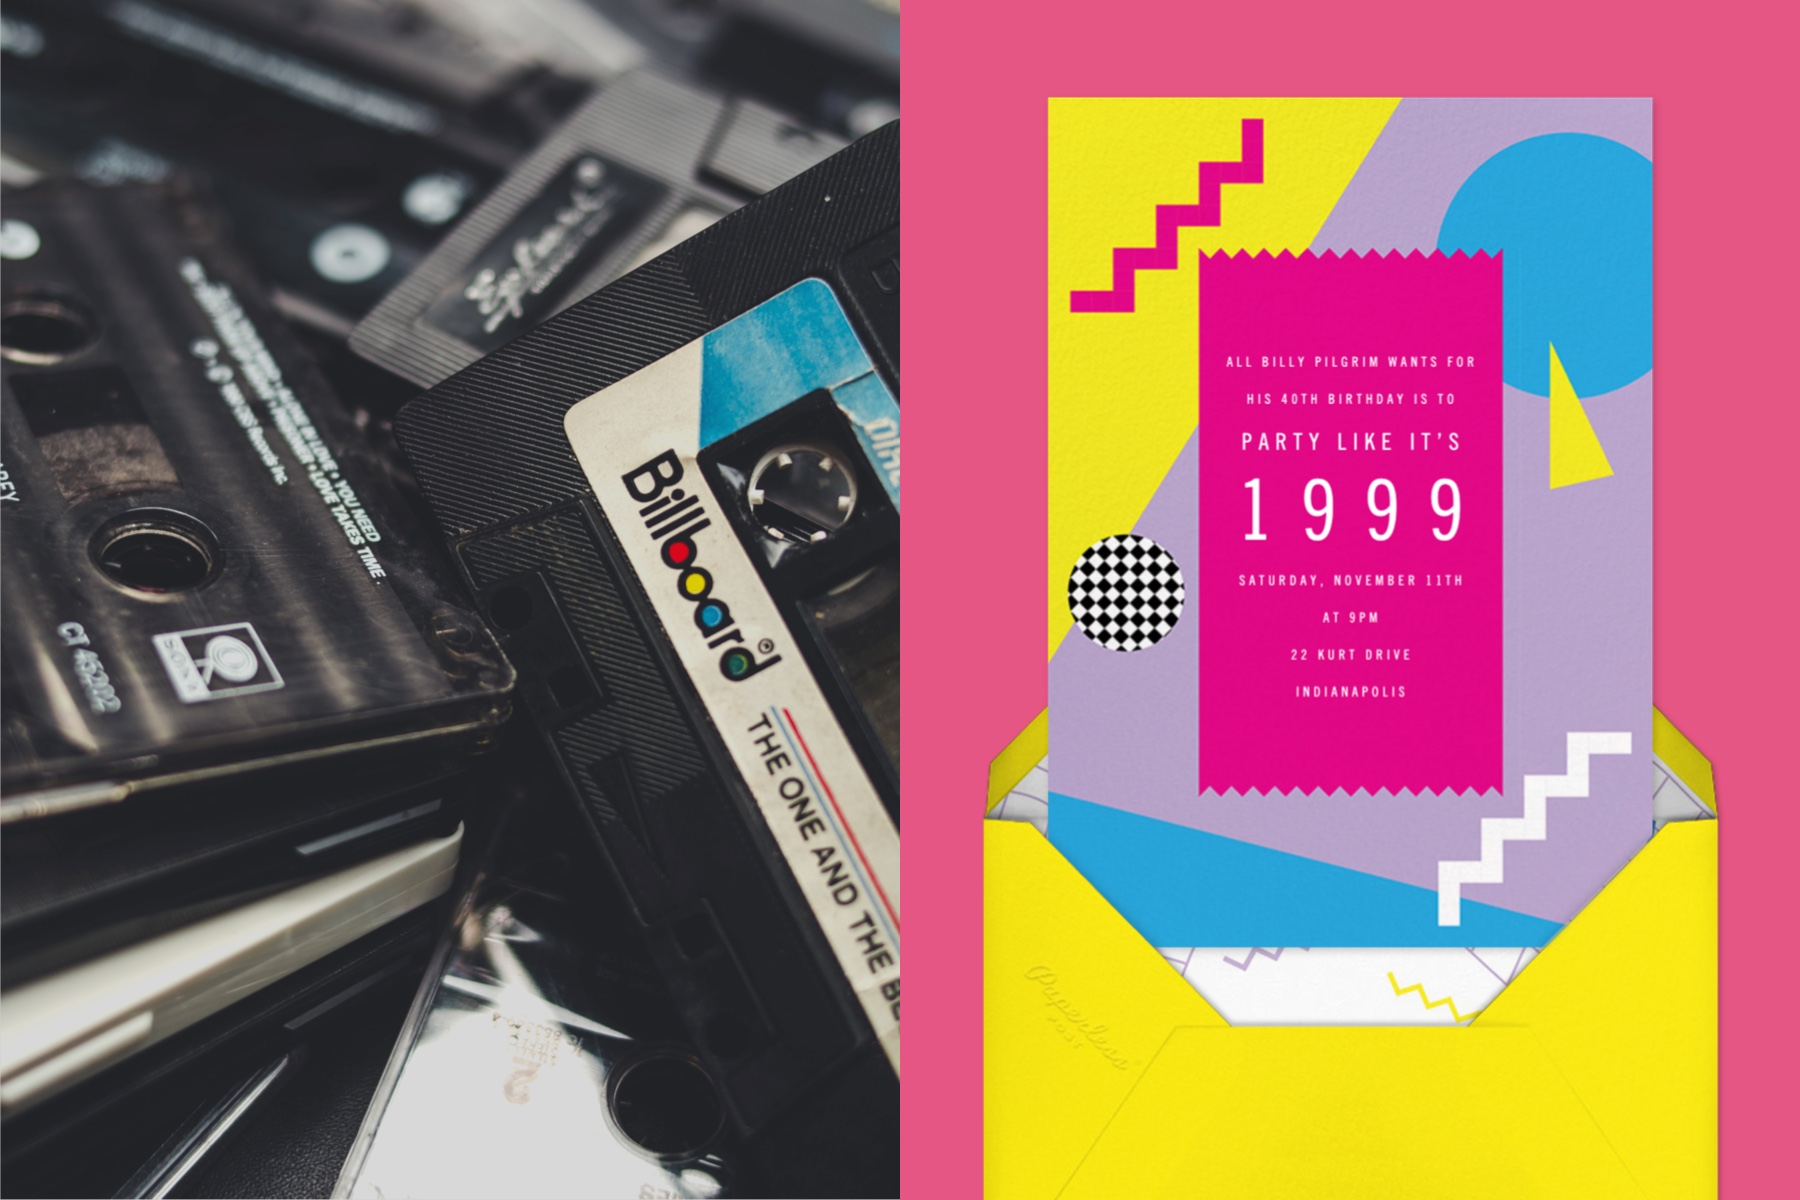 """Left: Pile of Billboard cassette tapes 